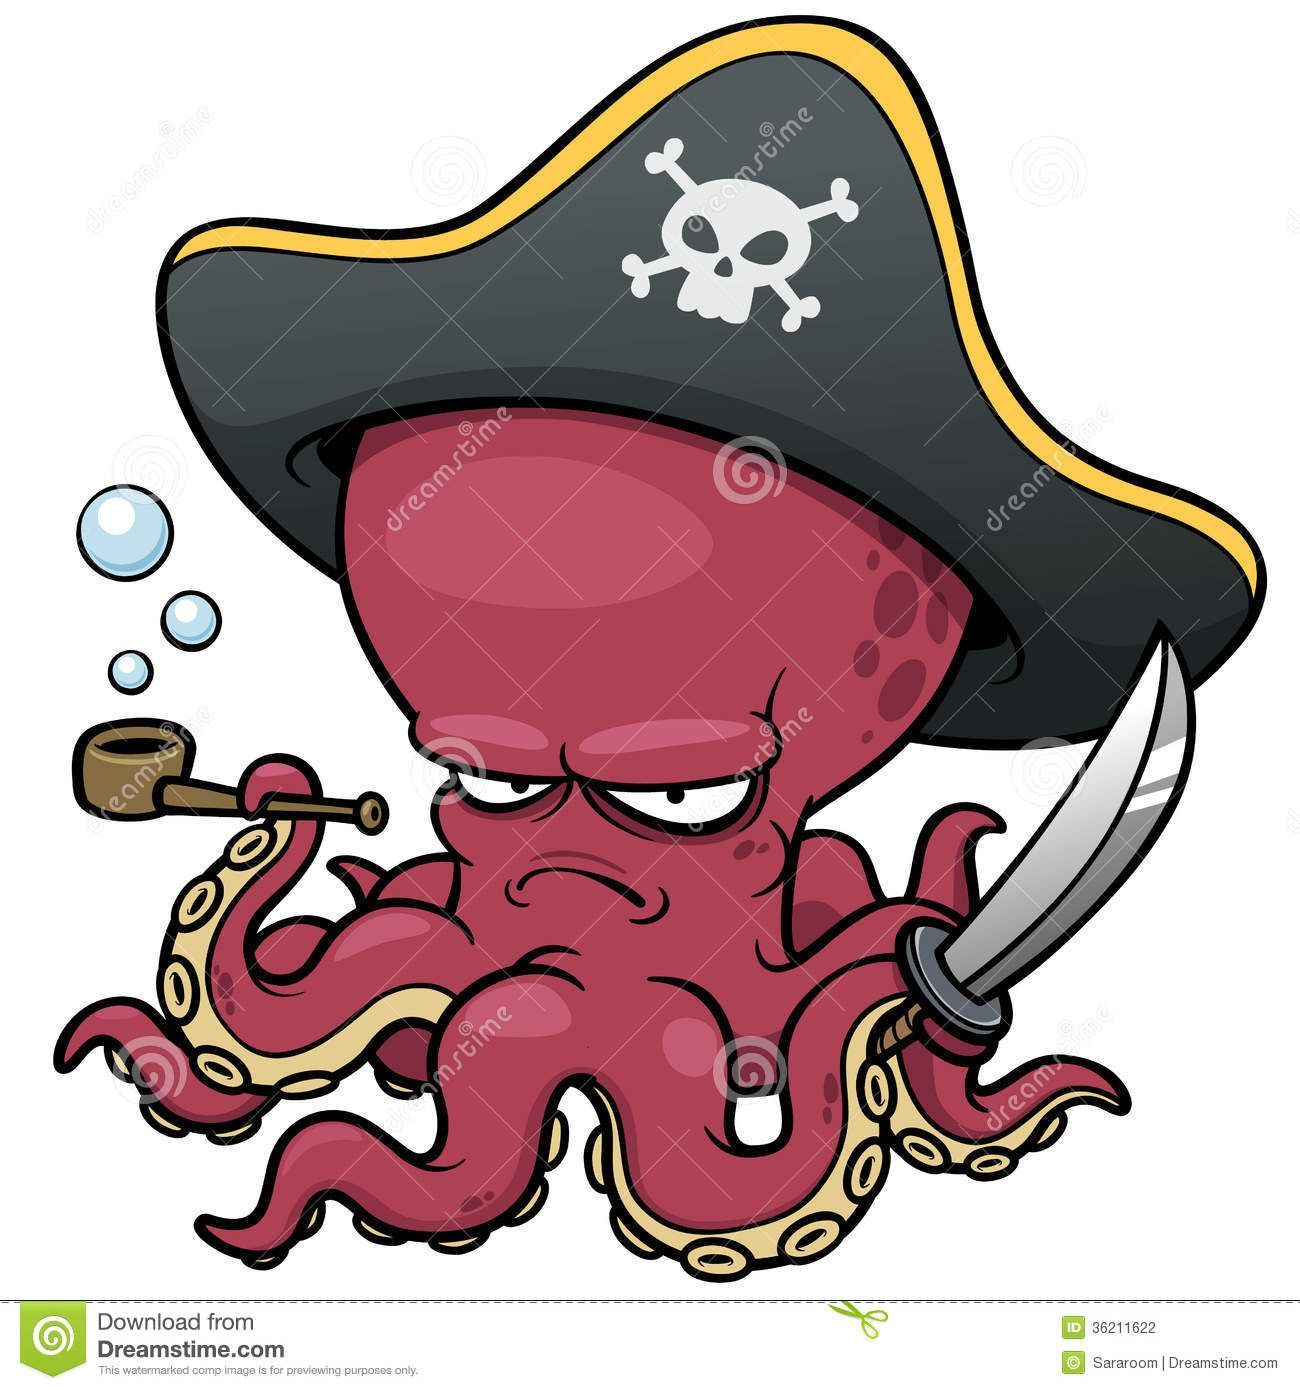 Cartoon octopus google search octopussies pinterest for Octopus in cartoon